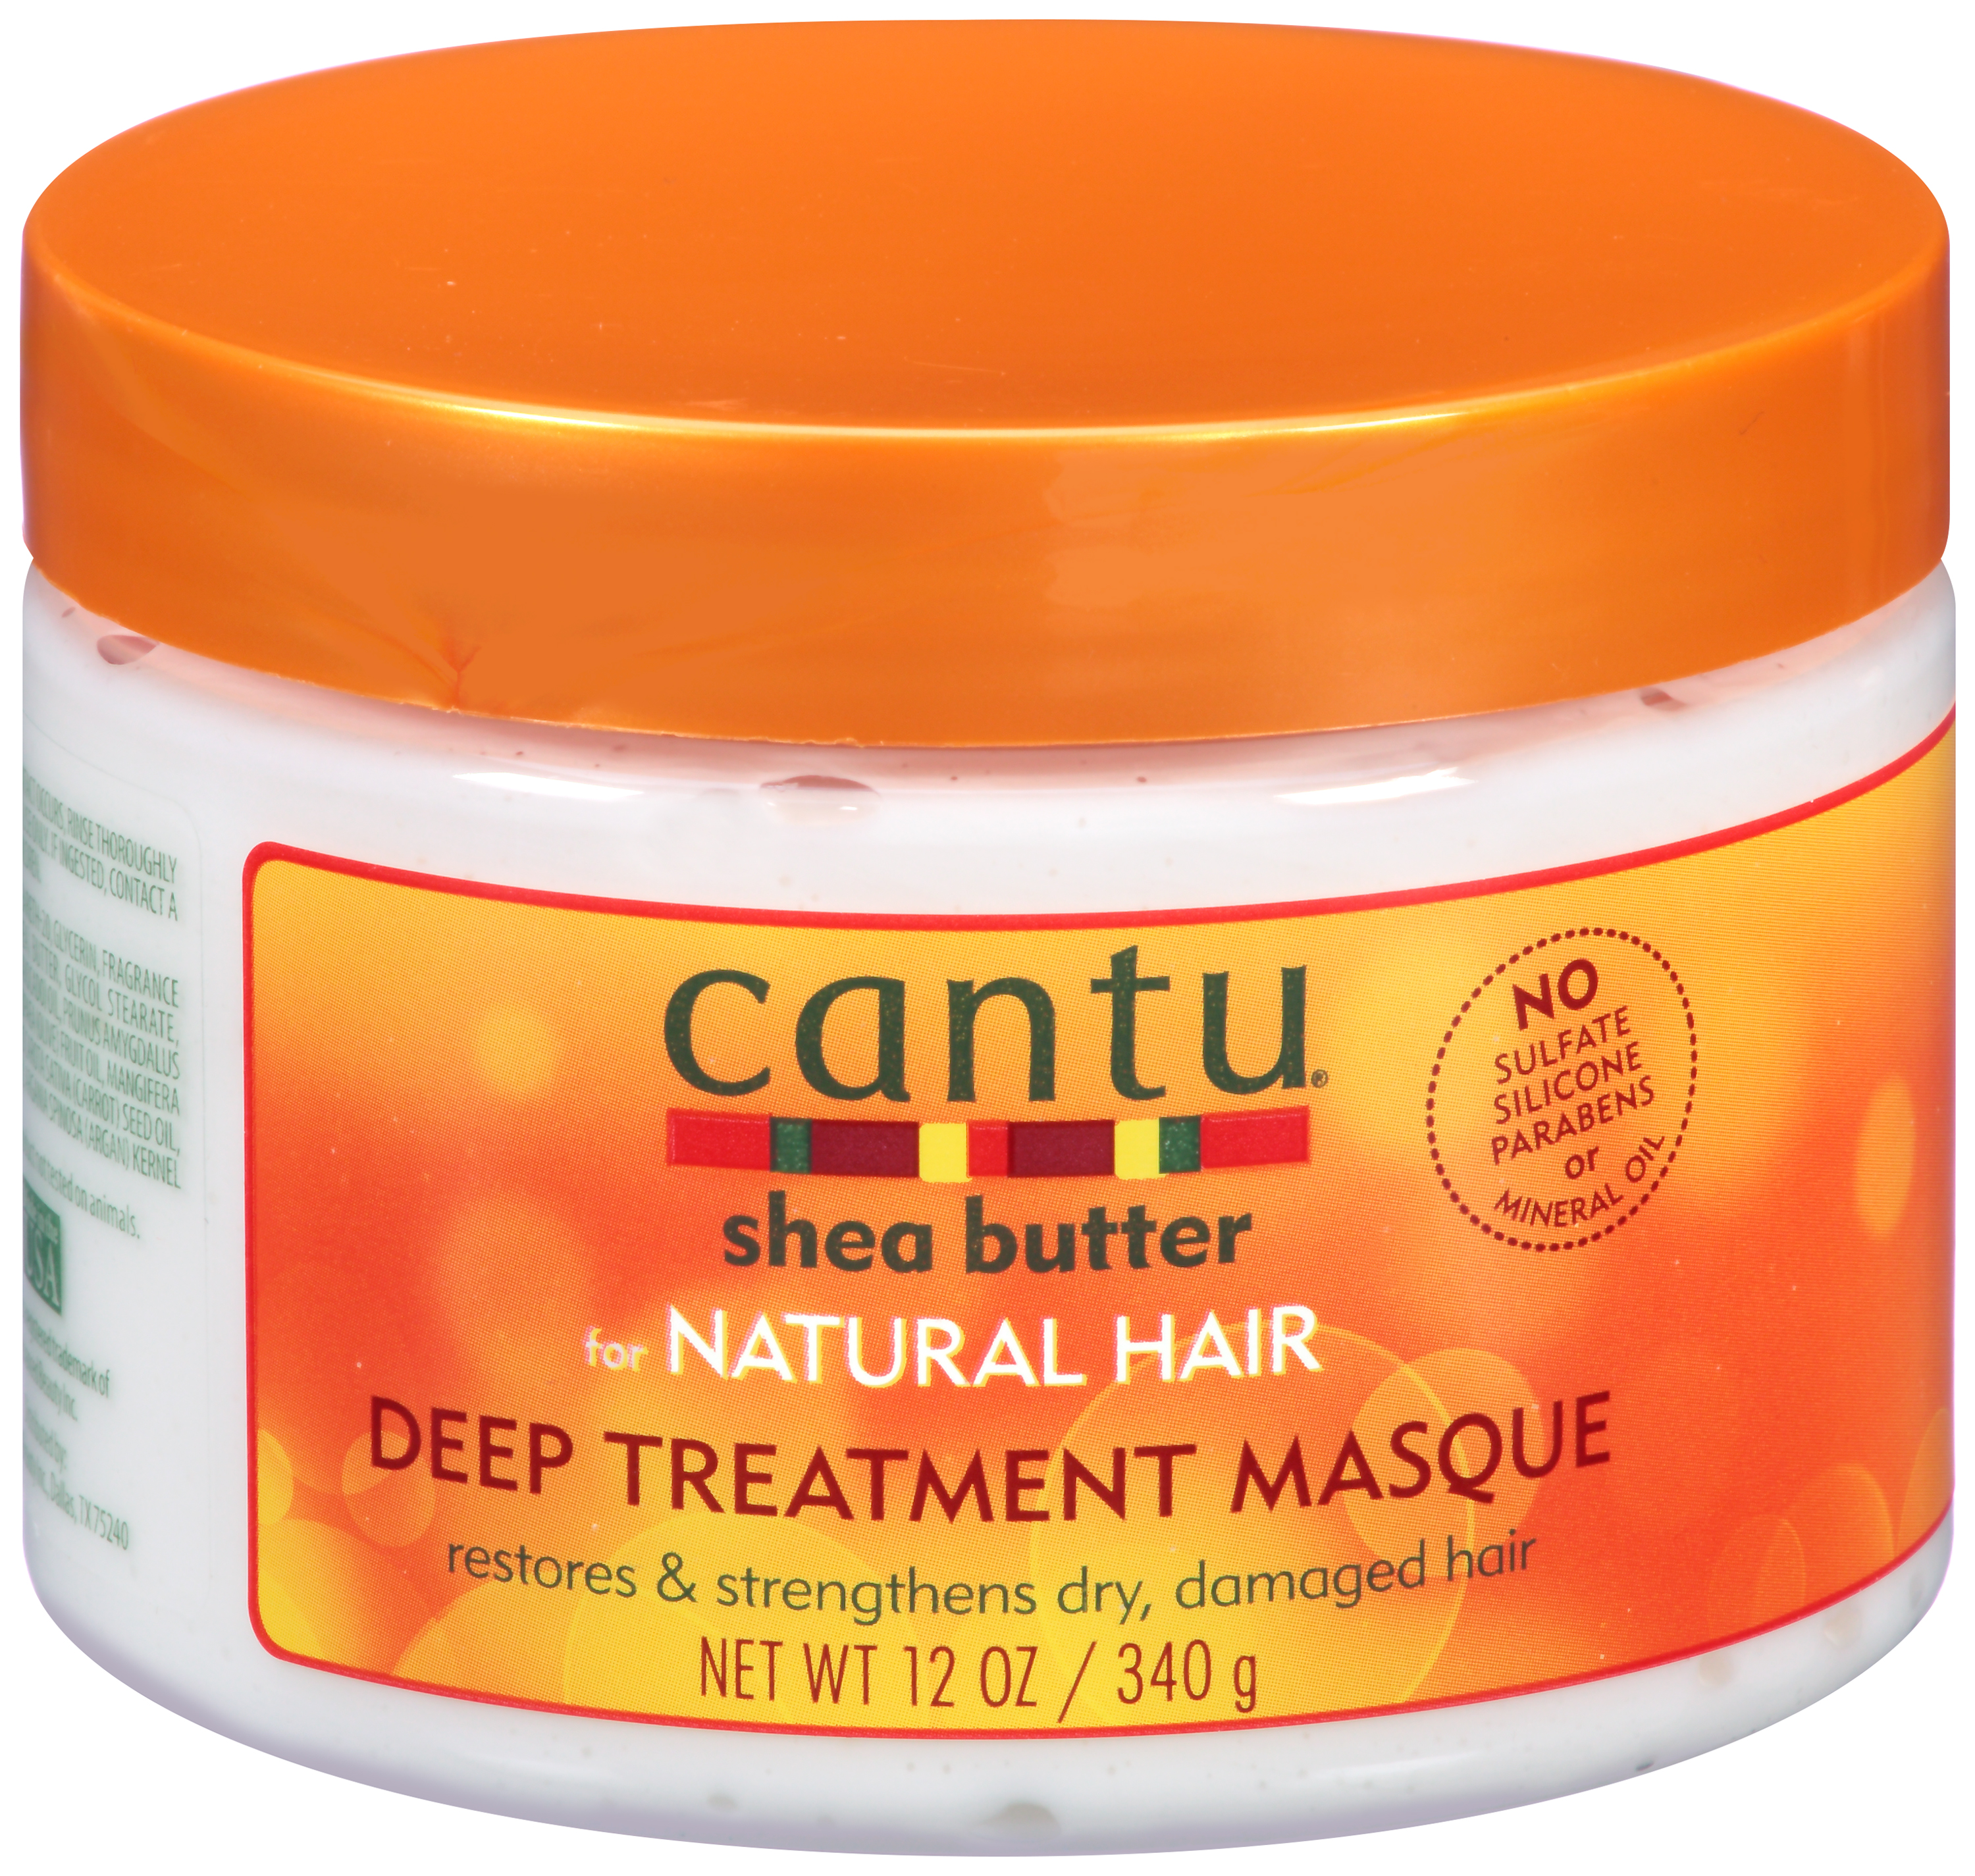 Cantu® Shea Butter for Natural Hair Deep Treatment Masque 12 oz. Jar